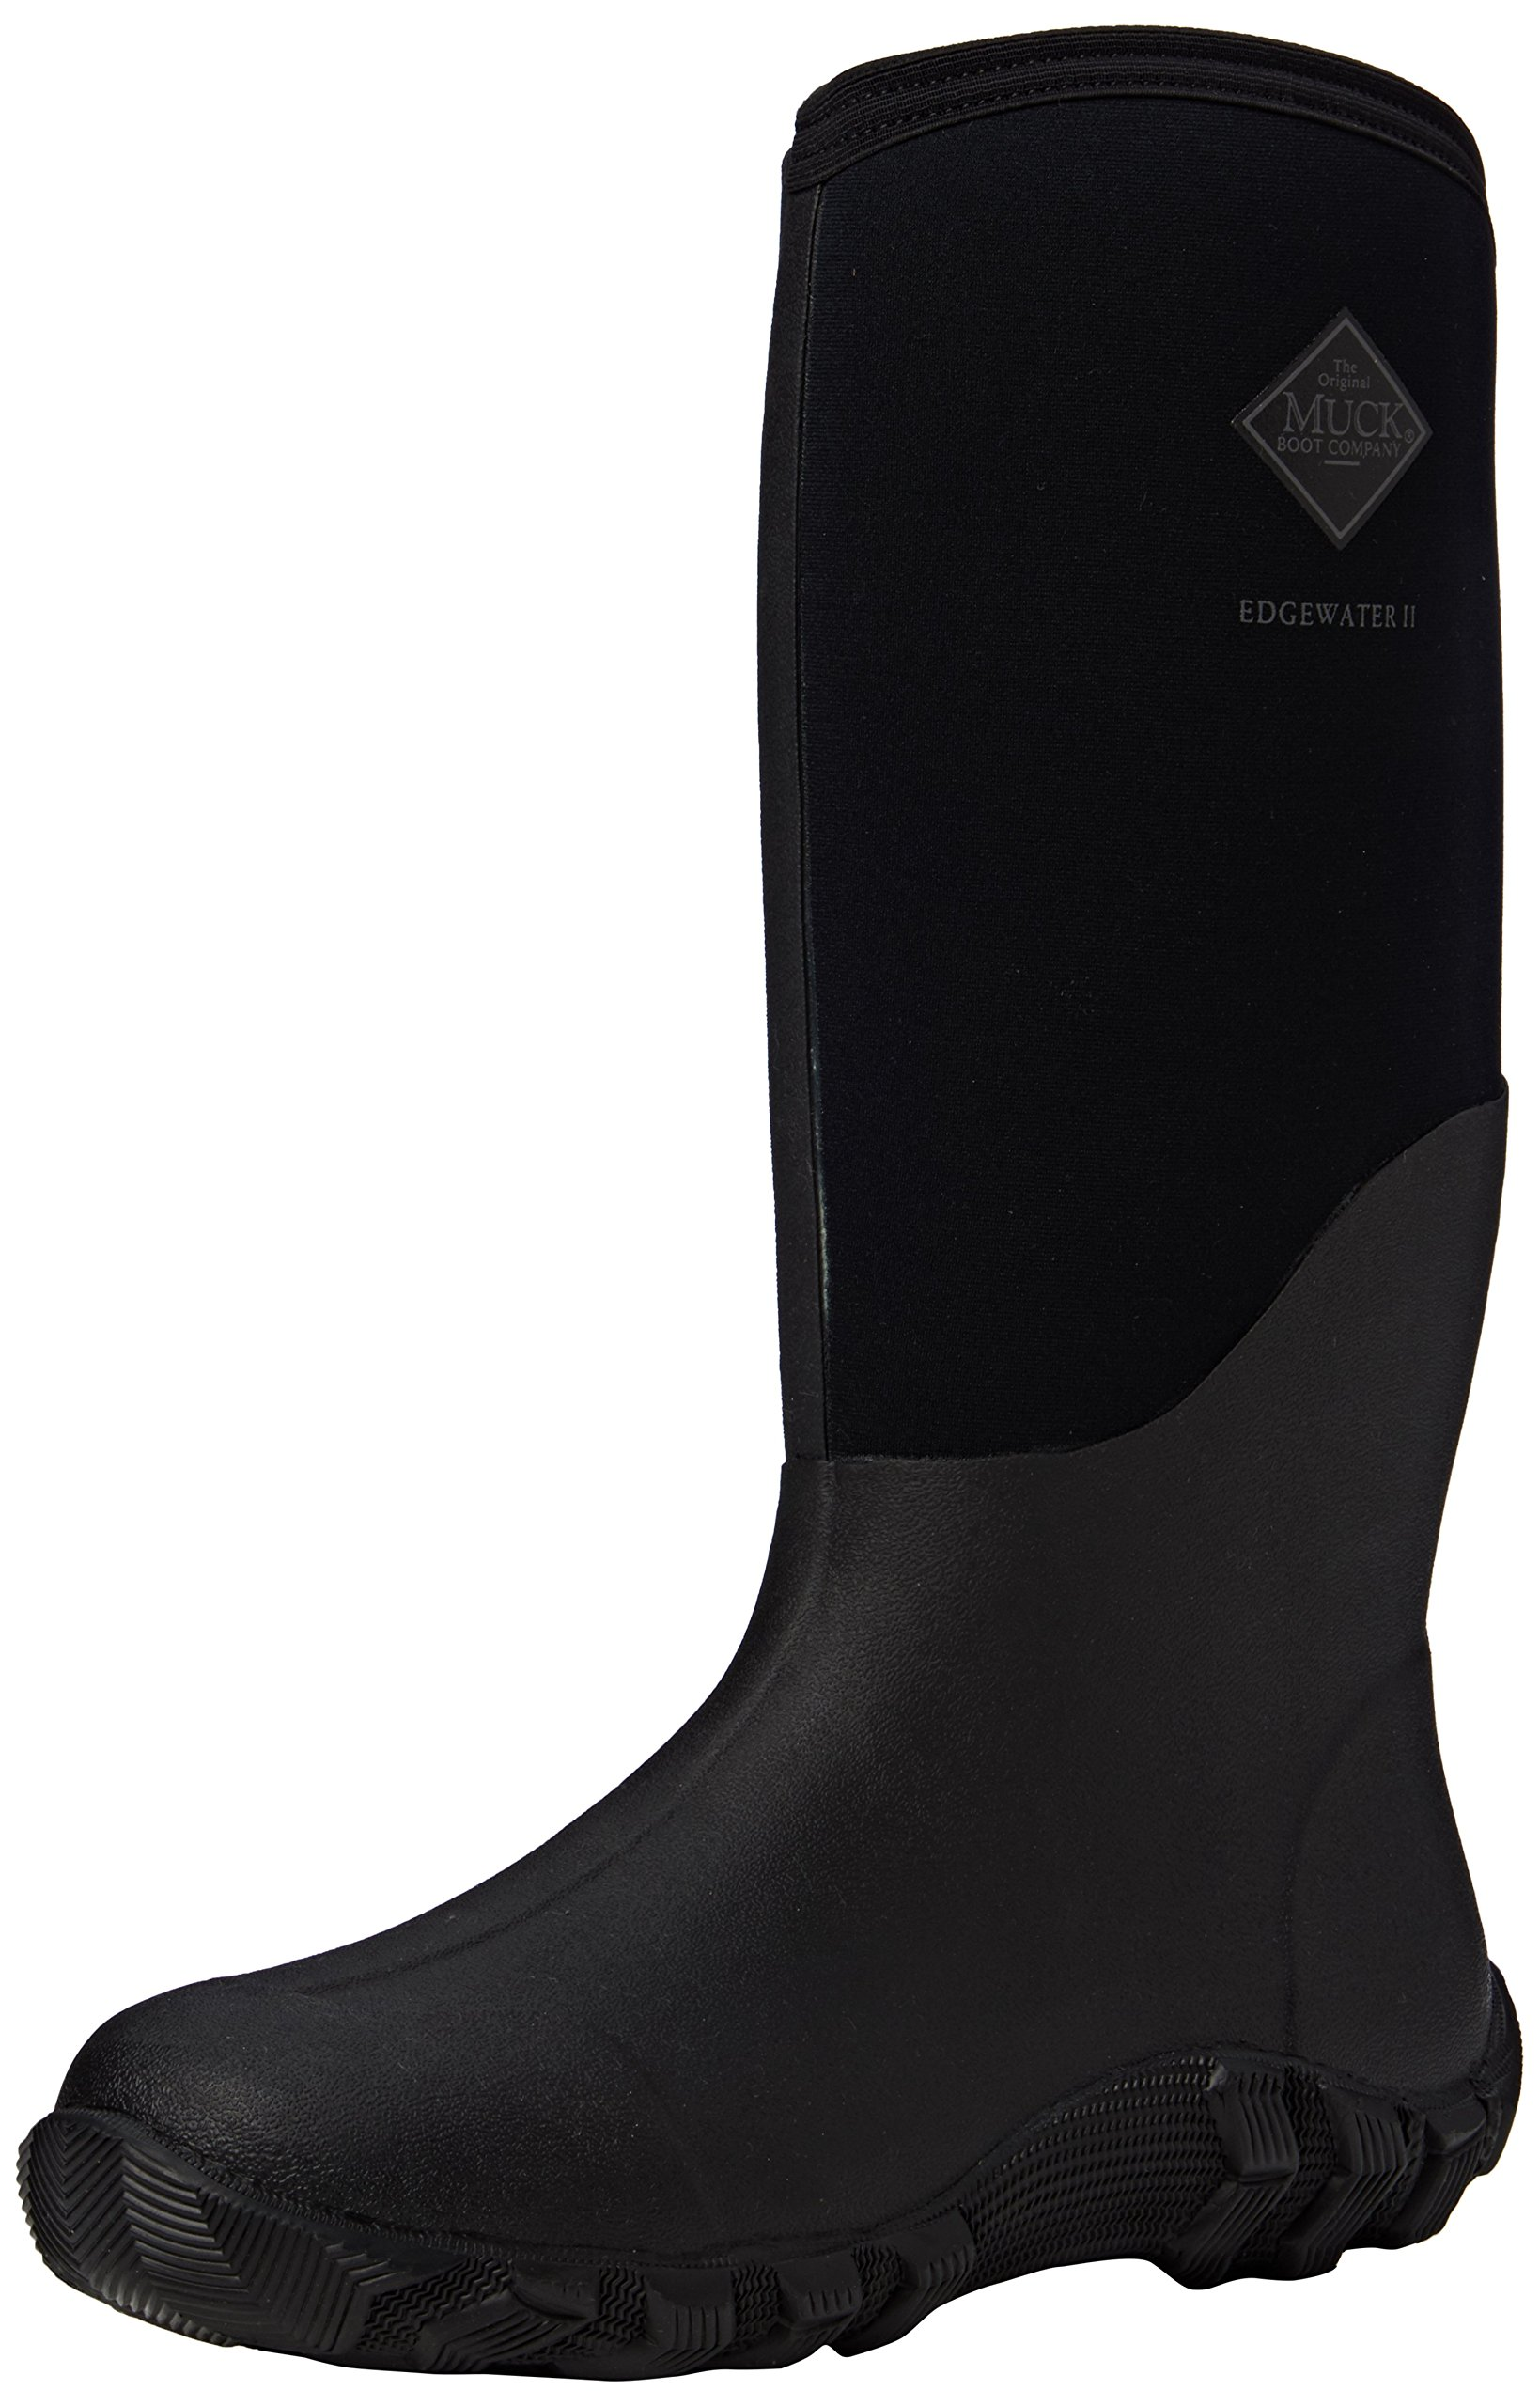 Muck Edgewater ll Multi-Purpose Tall Men's Rubber Boots by Muck Boot